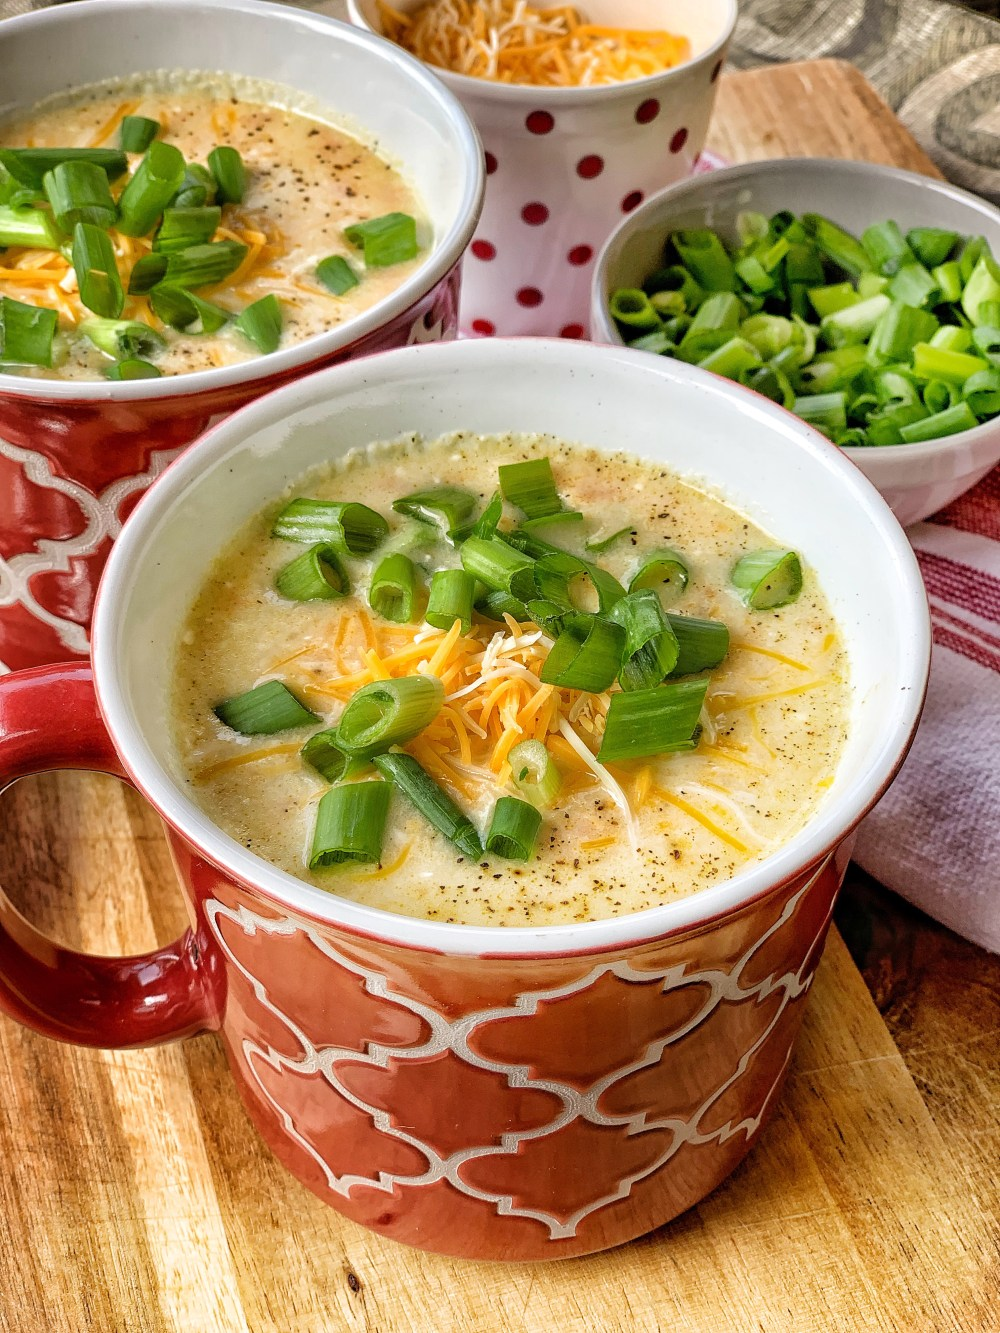 Two mugs of potato soup with cheddar cheese and green onions.